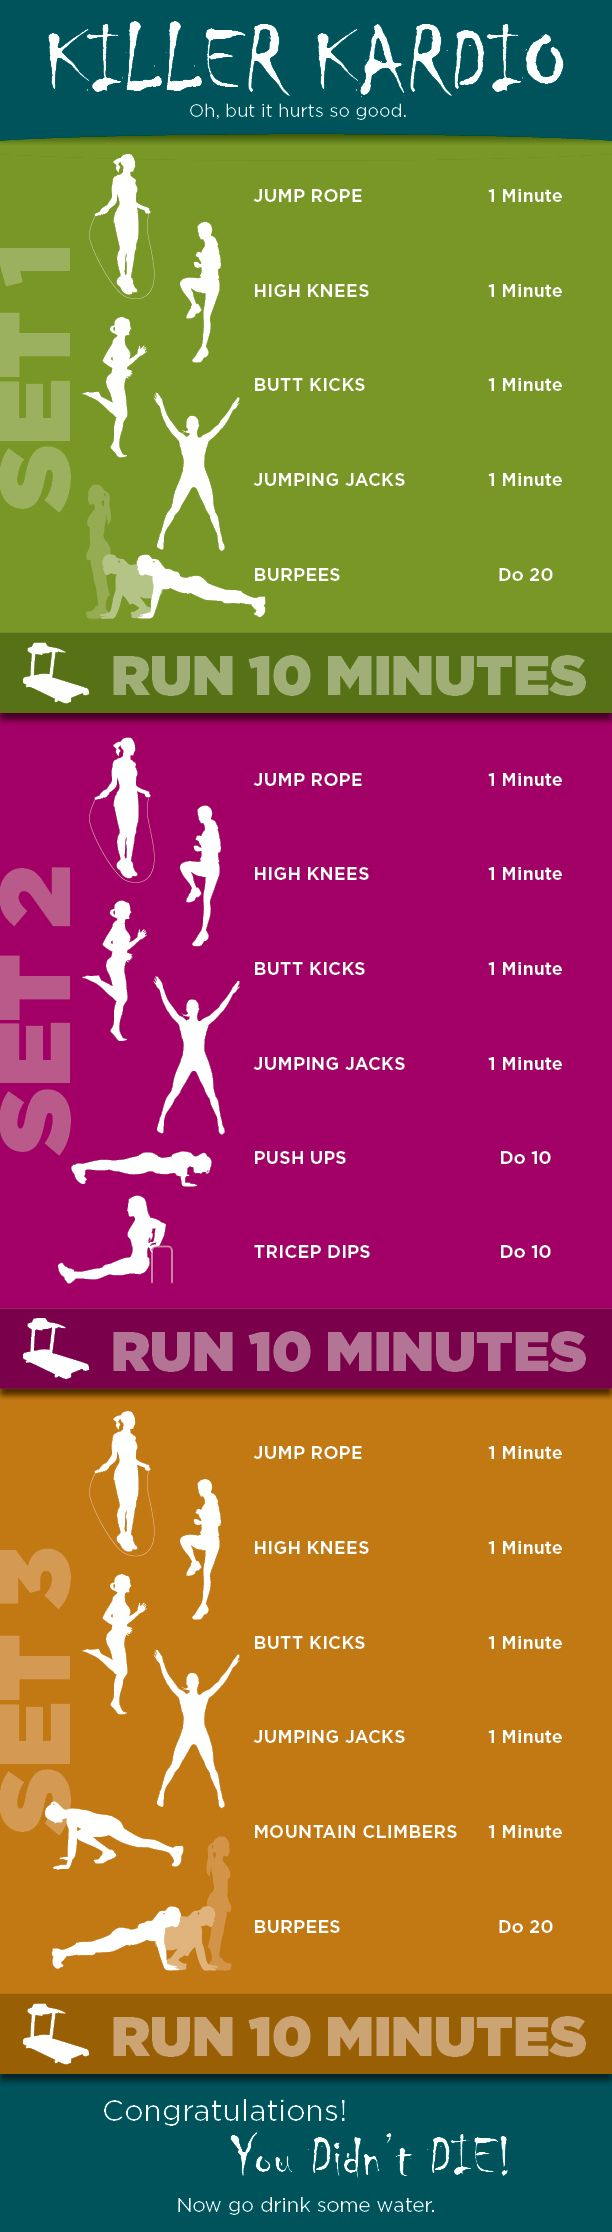 Challenging cardio workout that will make you sweat but won't kill ya! Get your workout on, ladies!!! | Fantasmo